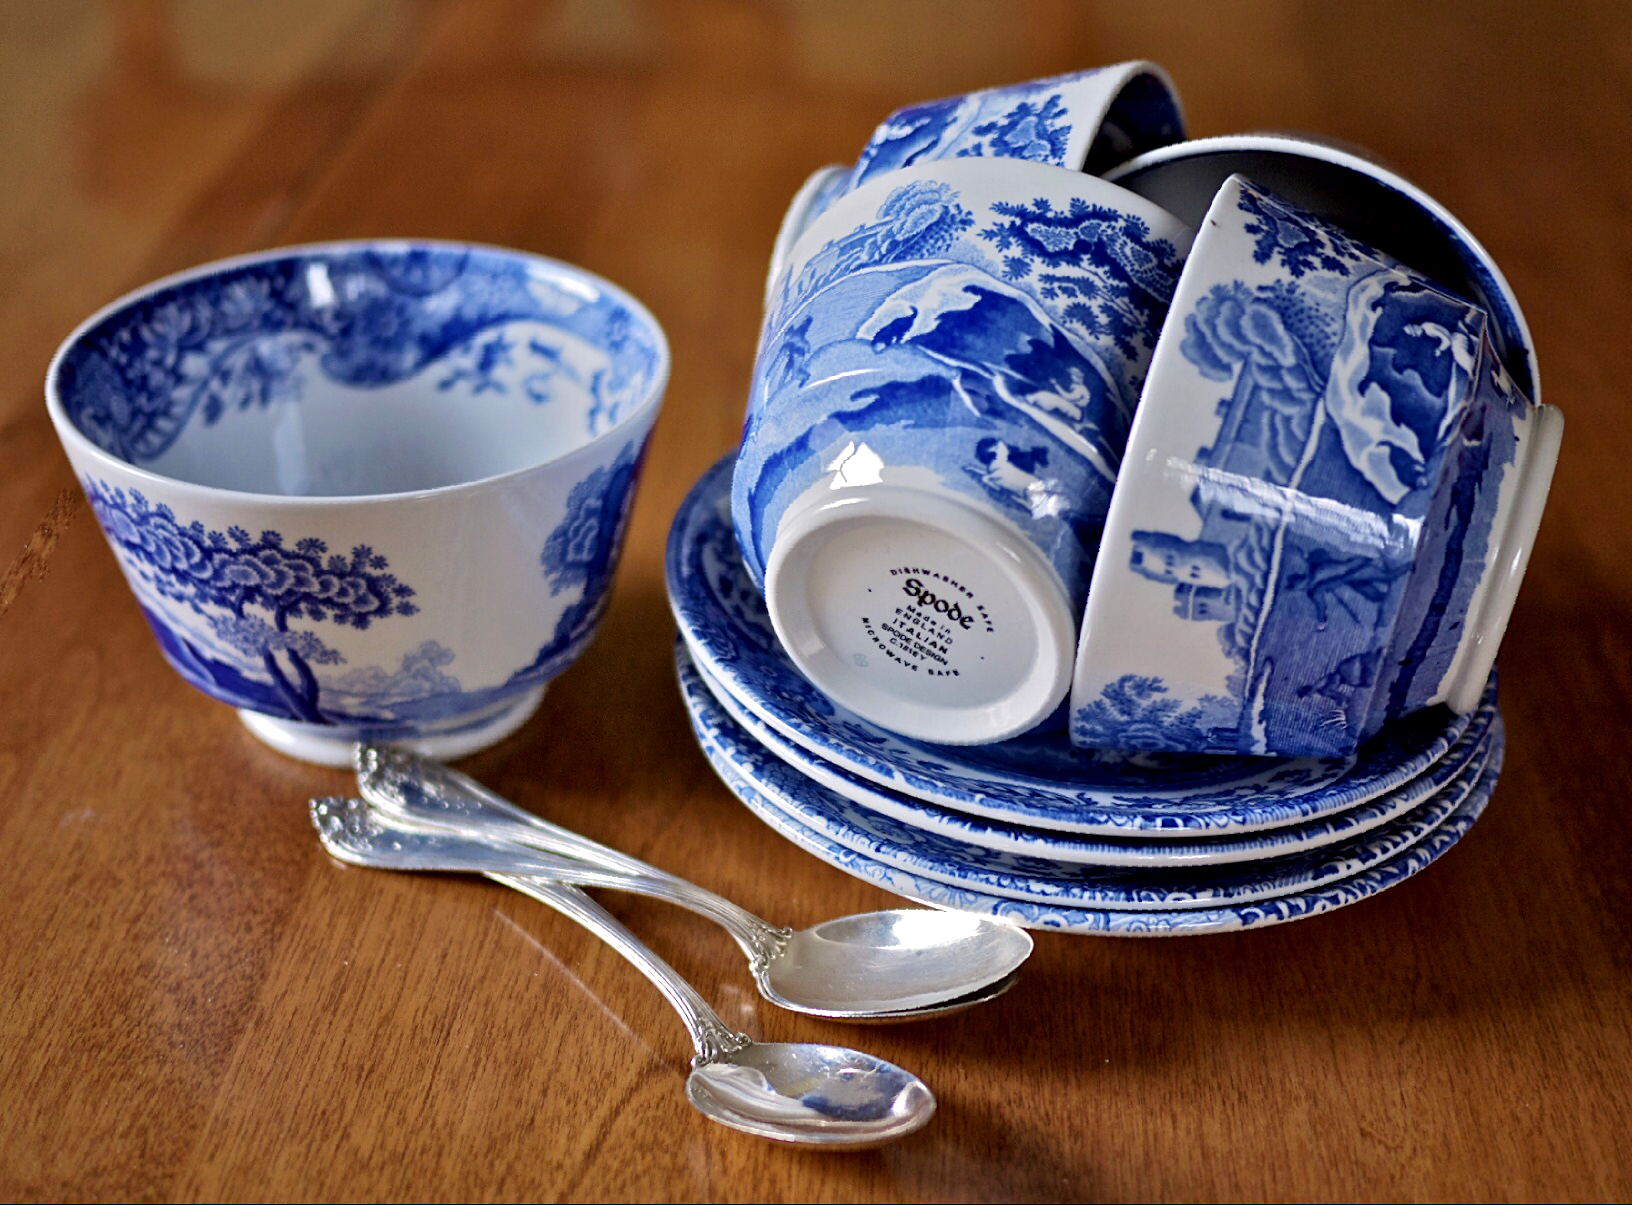 How To Identify The 5 Most Popular China Patterns – 5 Tomatoes